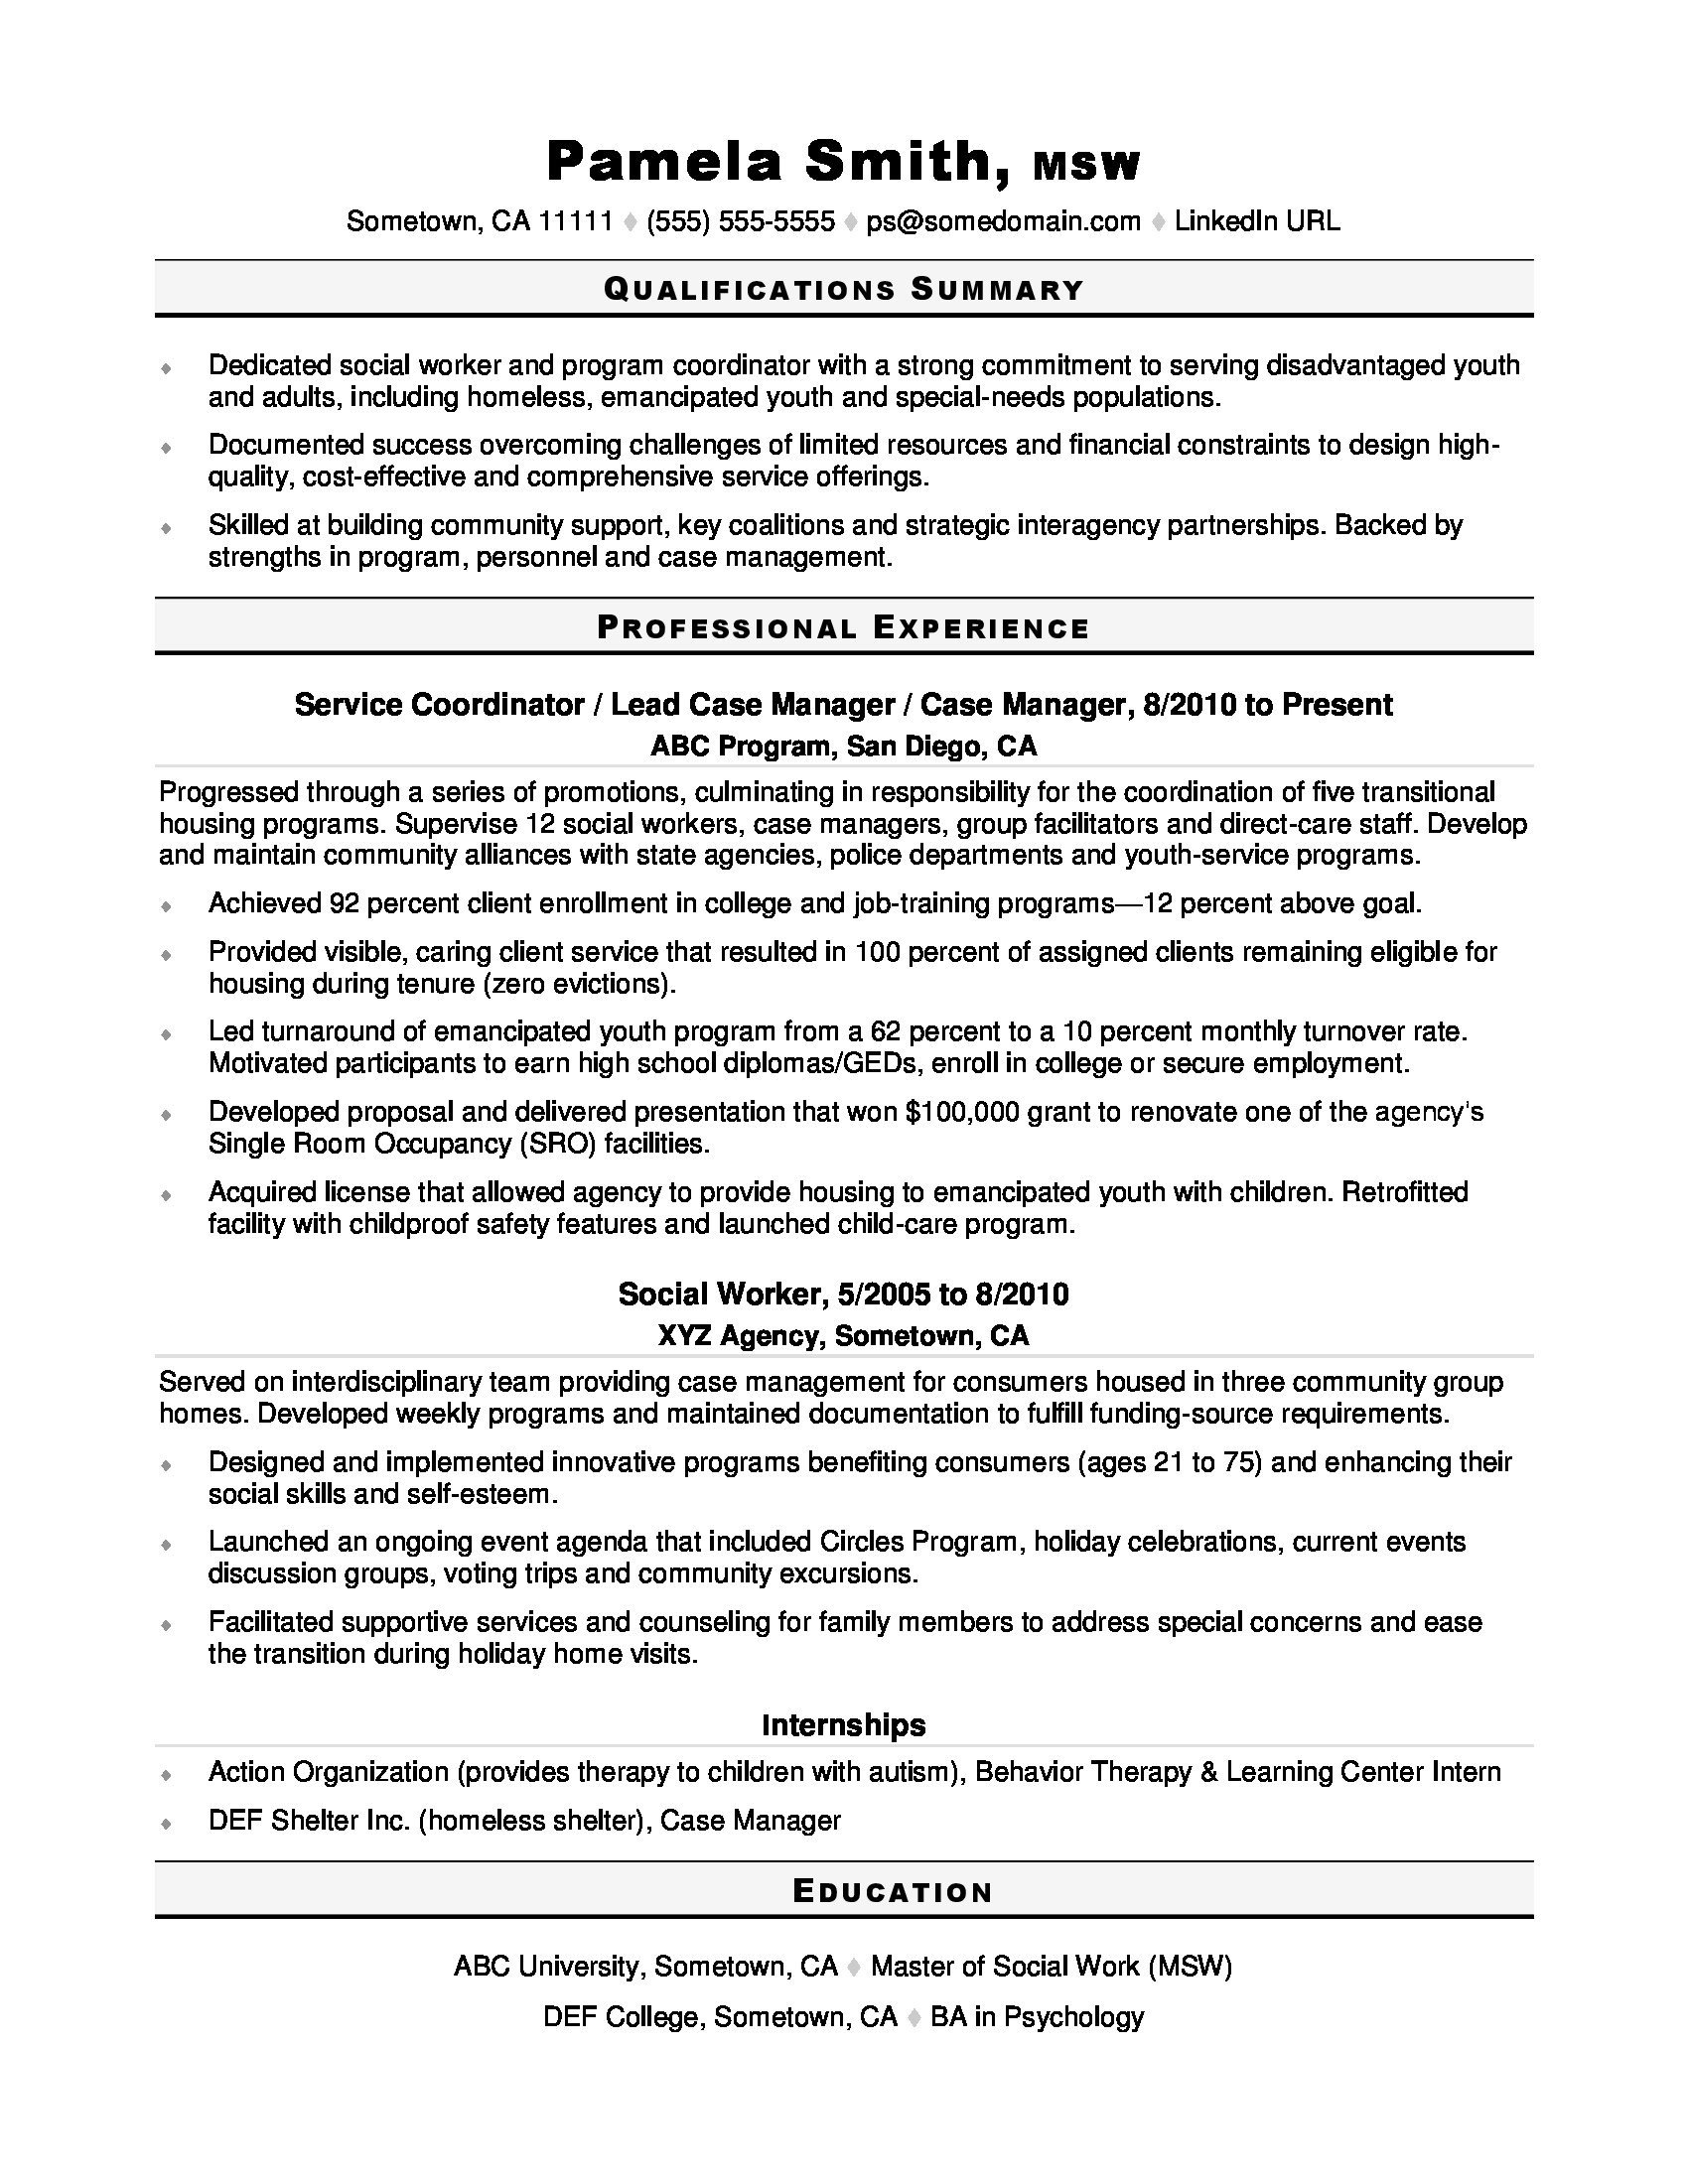 Social Worker Resume Templates social Worker Resume Sample